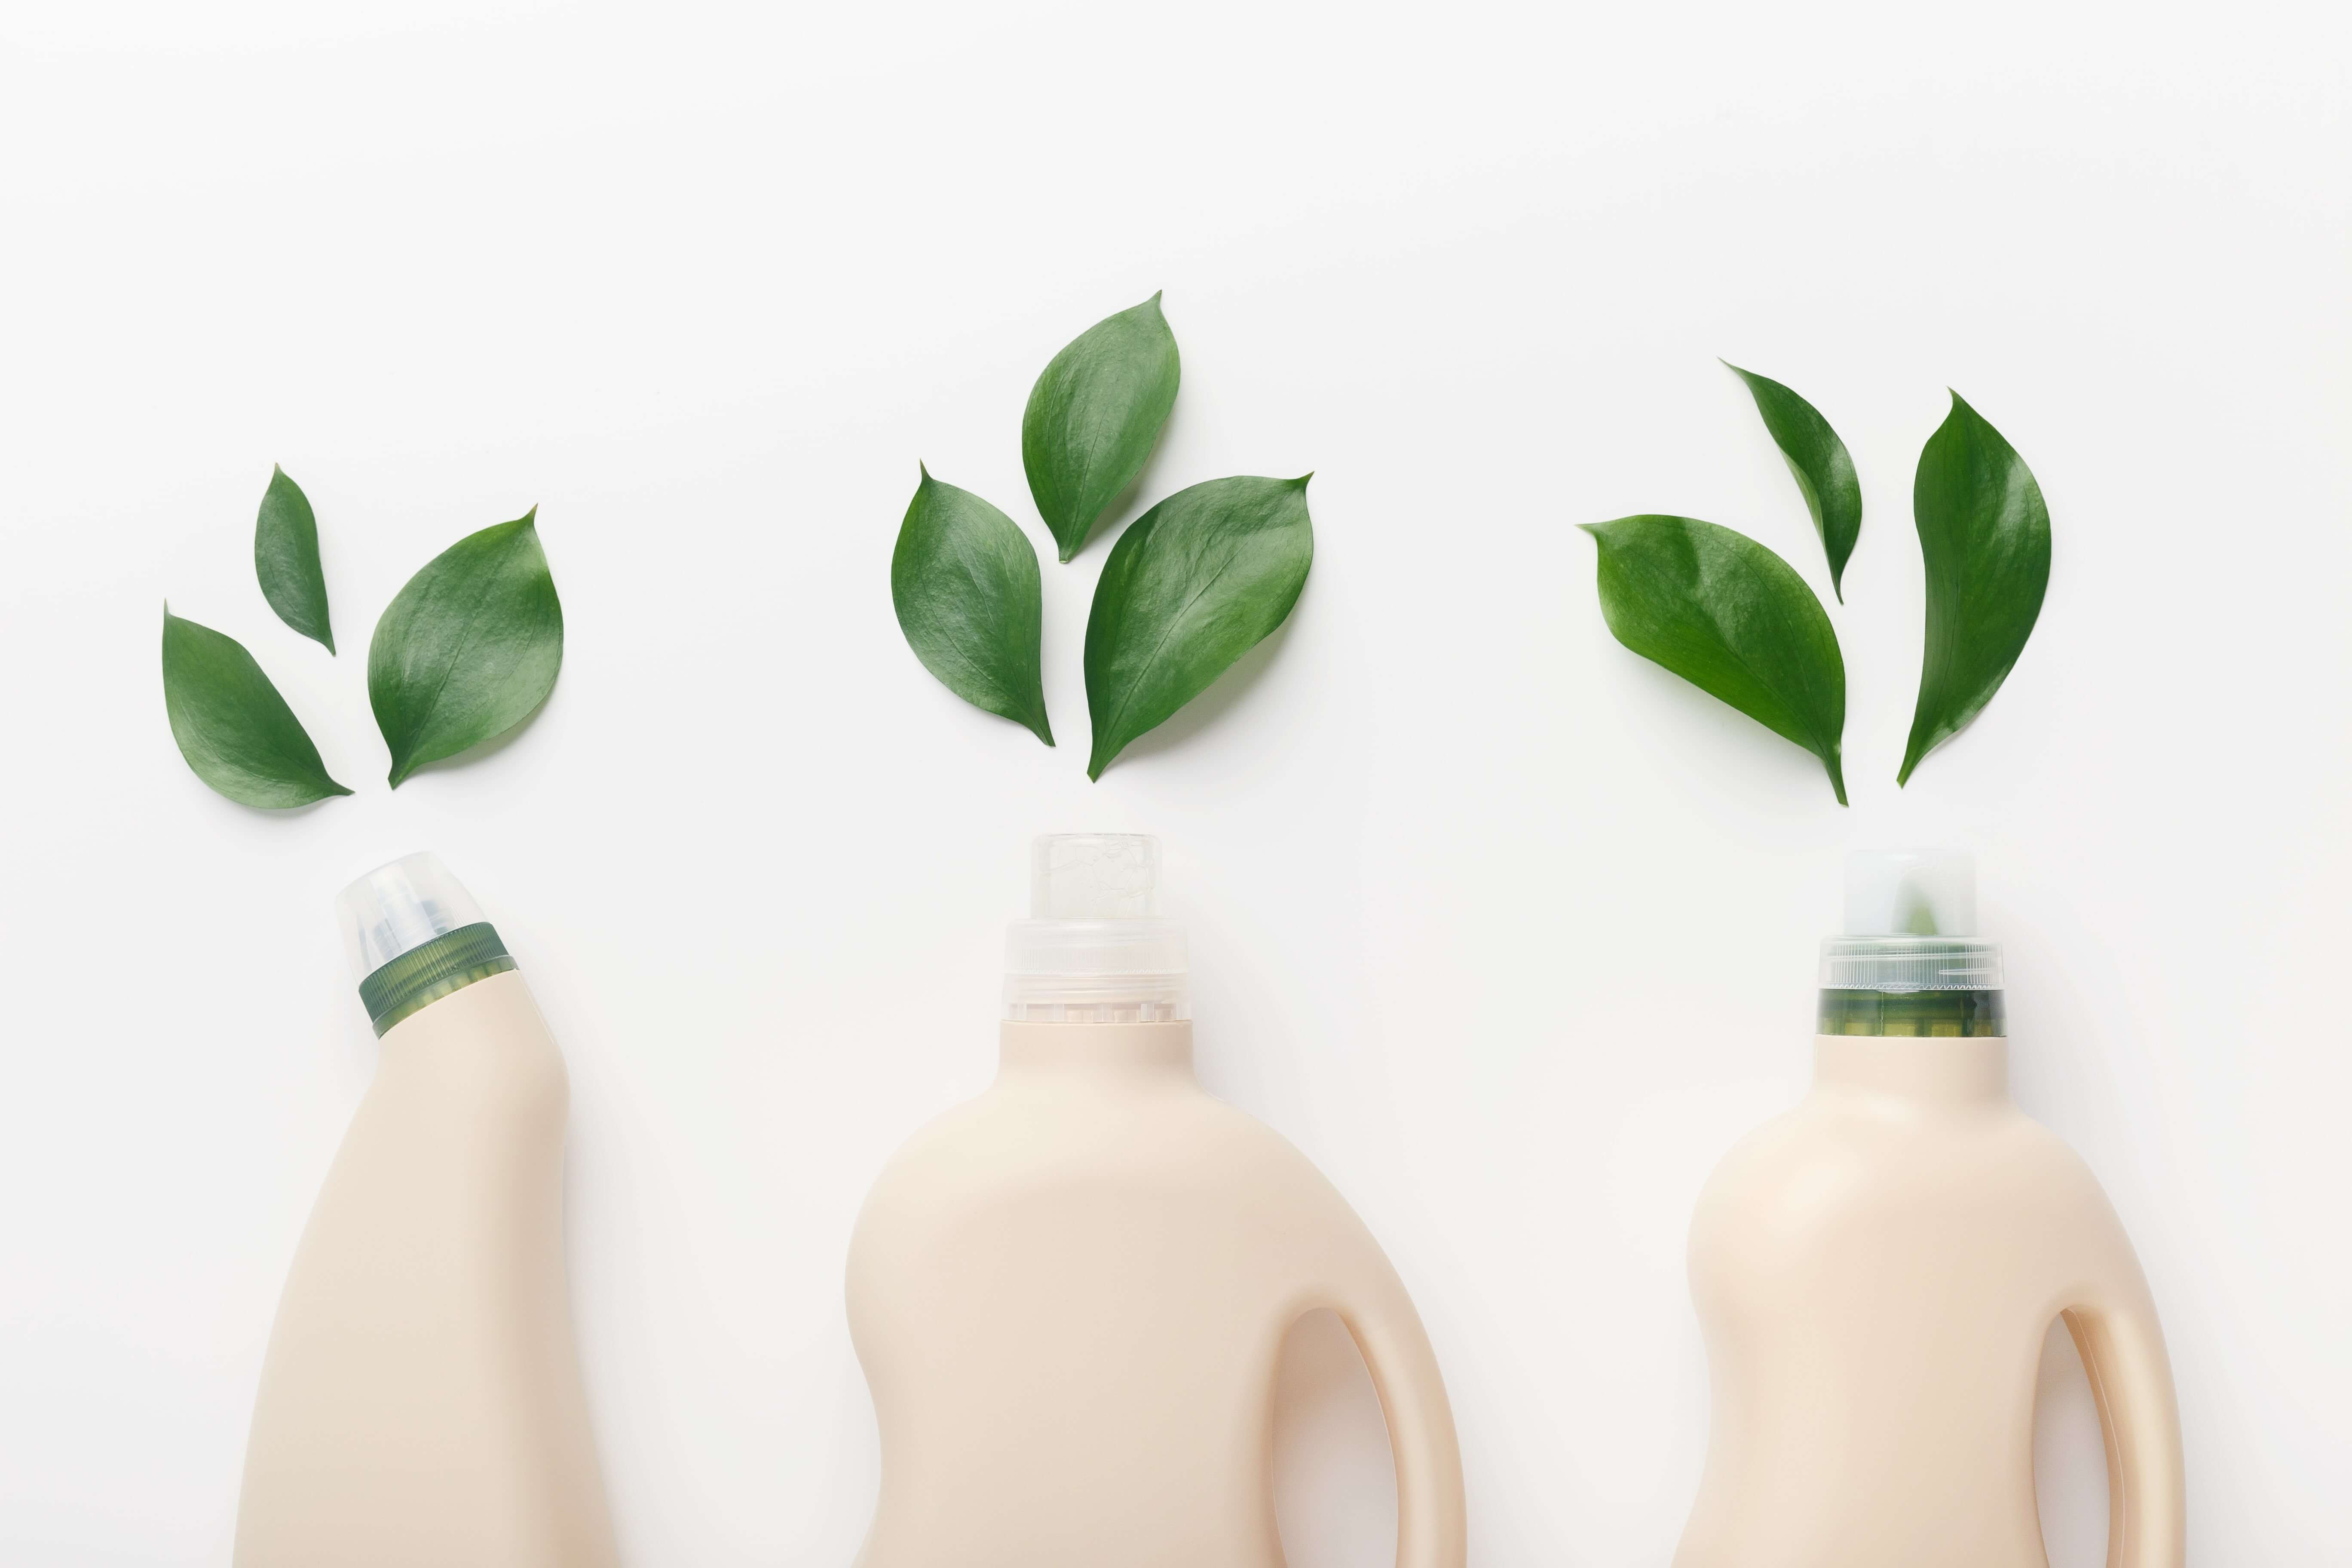 New Bio-based Plastic to be Produced by LyondellBasell, in Partnership with Neste